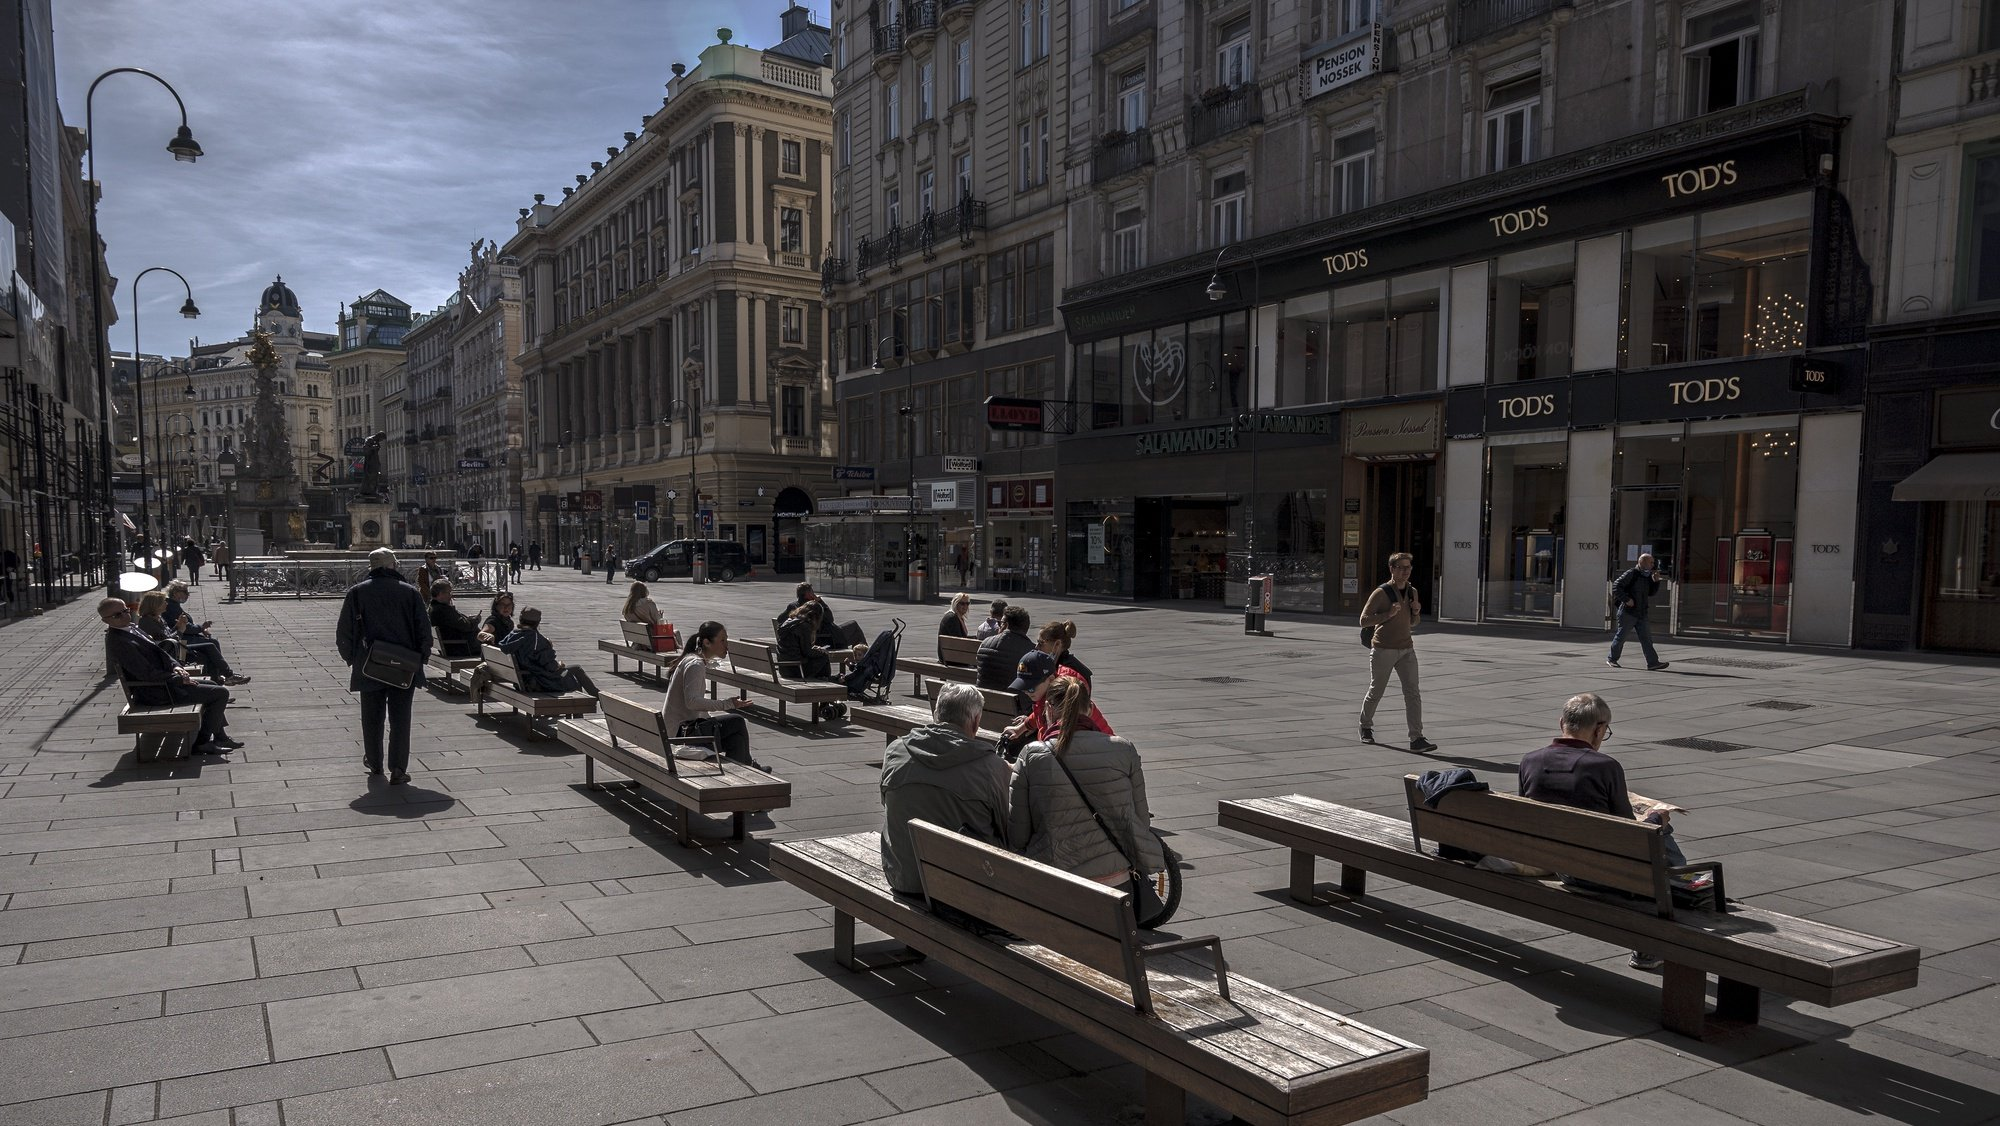 epa08366688 People sit on benches at the Graben shopping street in Vienna, Austria, 16 April 2020. Non essential stores with a shop area under 400 square meters, hardware stores, garden centres and federal parks are allowed to reopen under strict safety measures to slow down the ongoing pandemic of the COVID-19 disease caused by the SARS-CoV-2 coronavirus since 14 April 2020. The government has ordered to wear face masks in supermarkets, pharmacies, various kind of opened shops, public transportation and car pools.  EPA/CHRISTIAN BRUNA